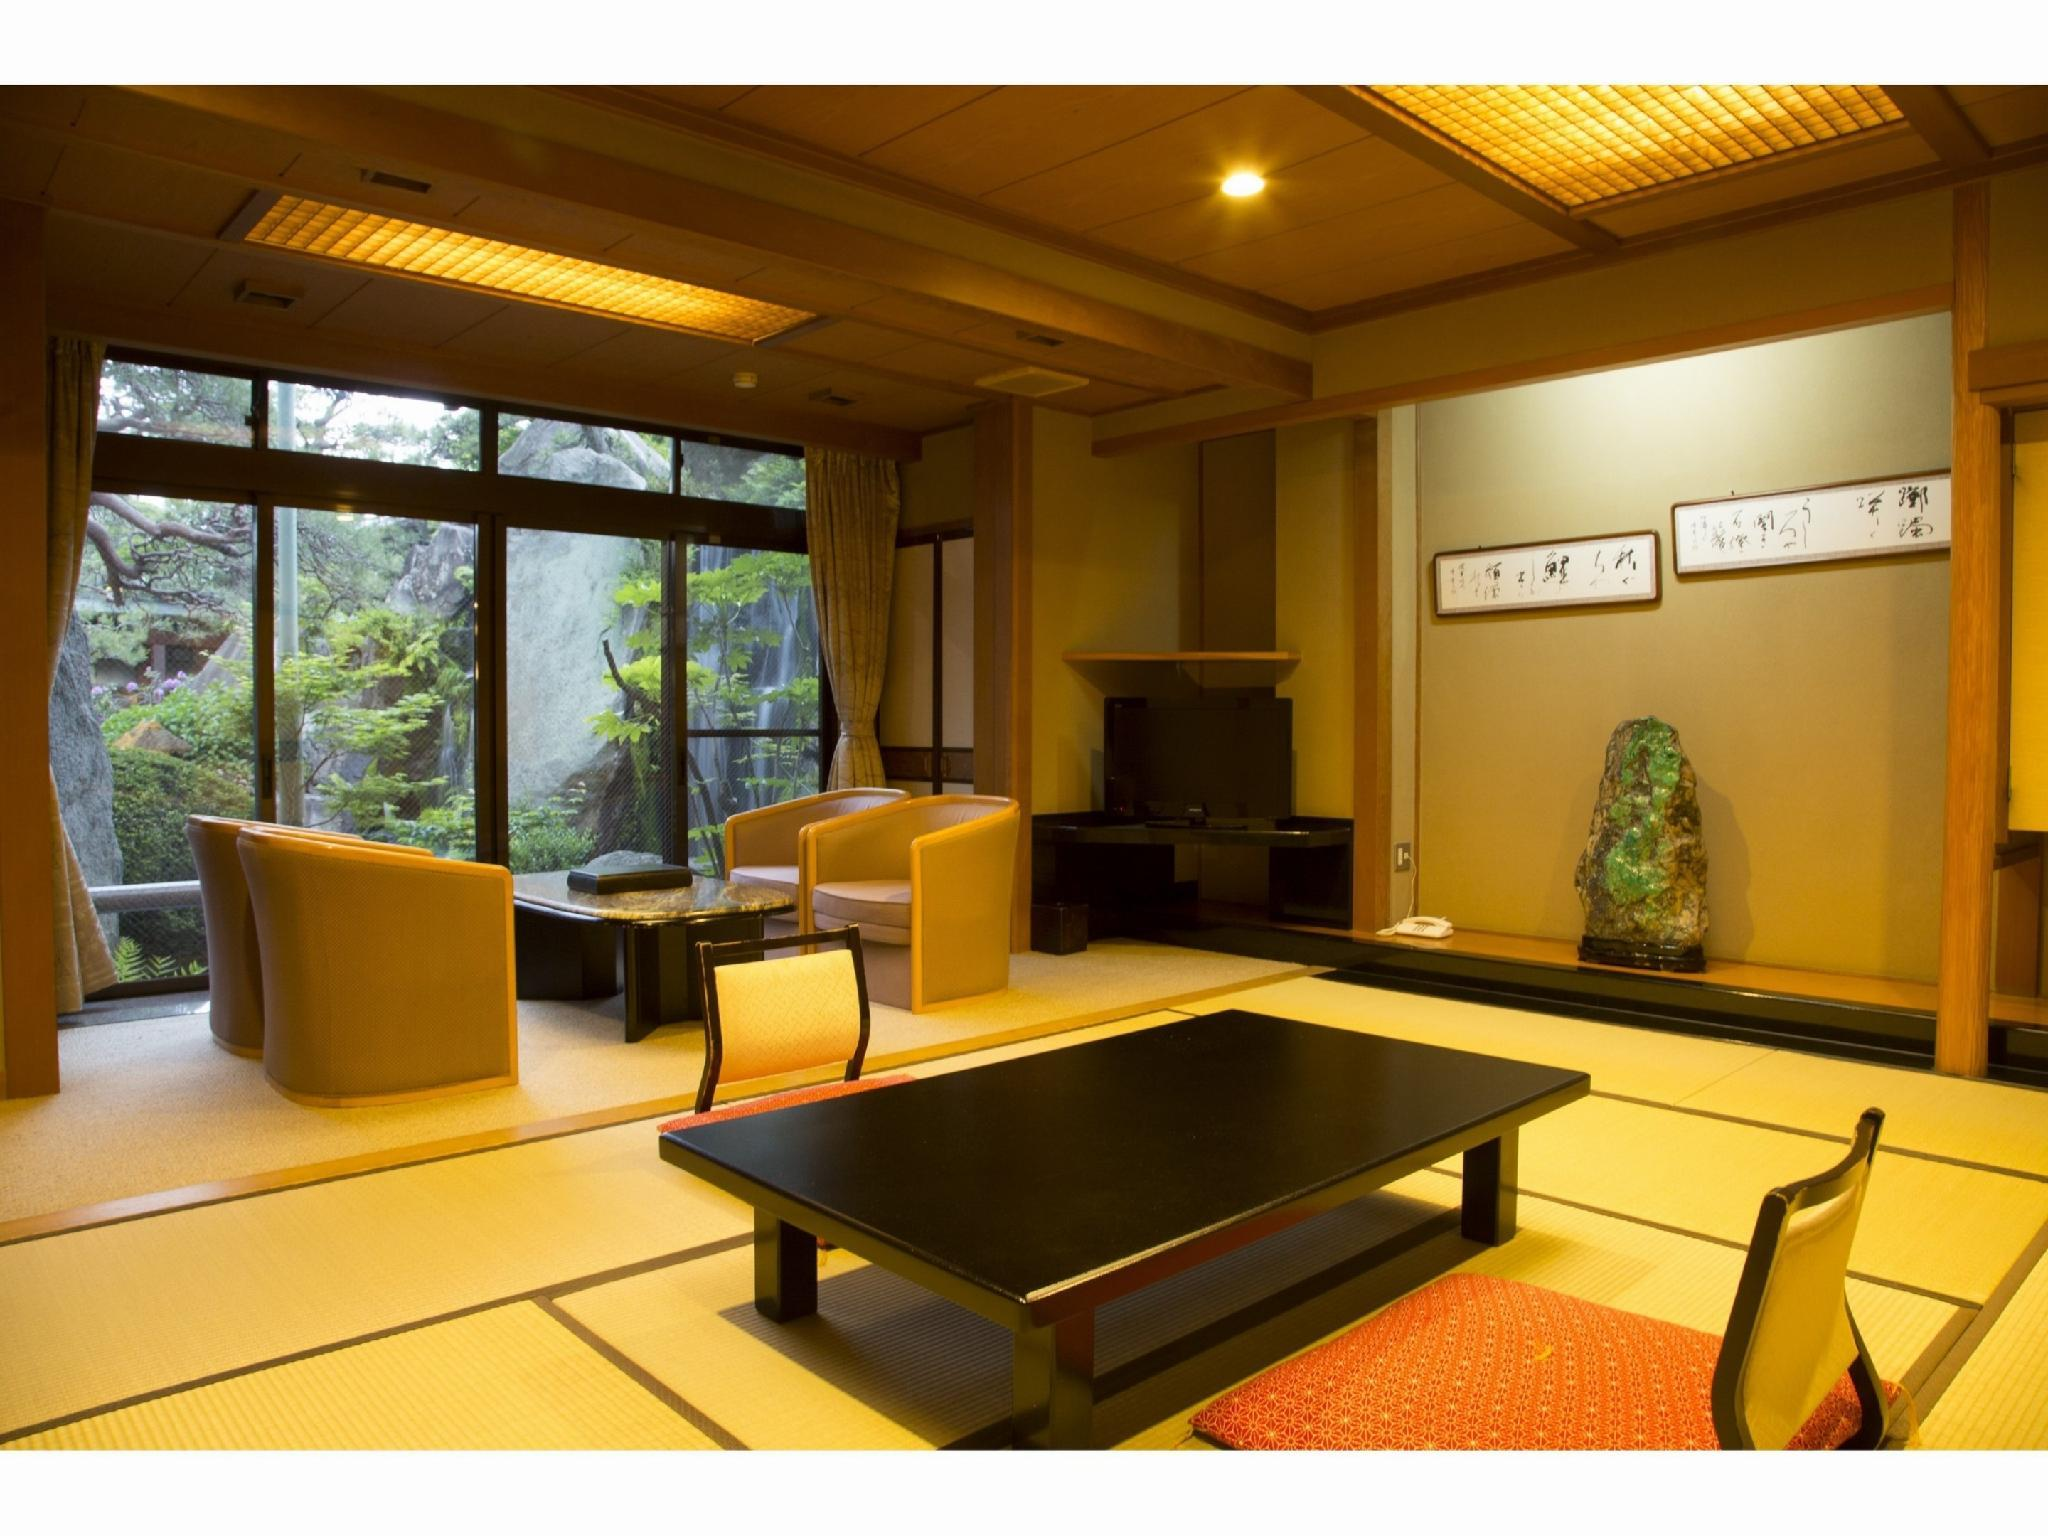 和室 (Japanese-style Room with Reception Room (Nishiden Type))